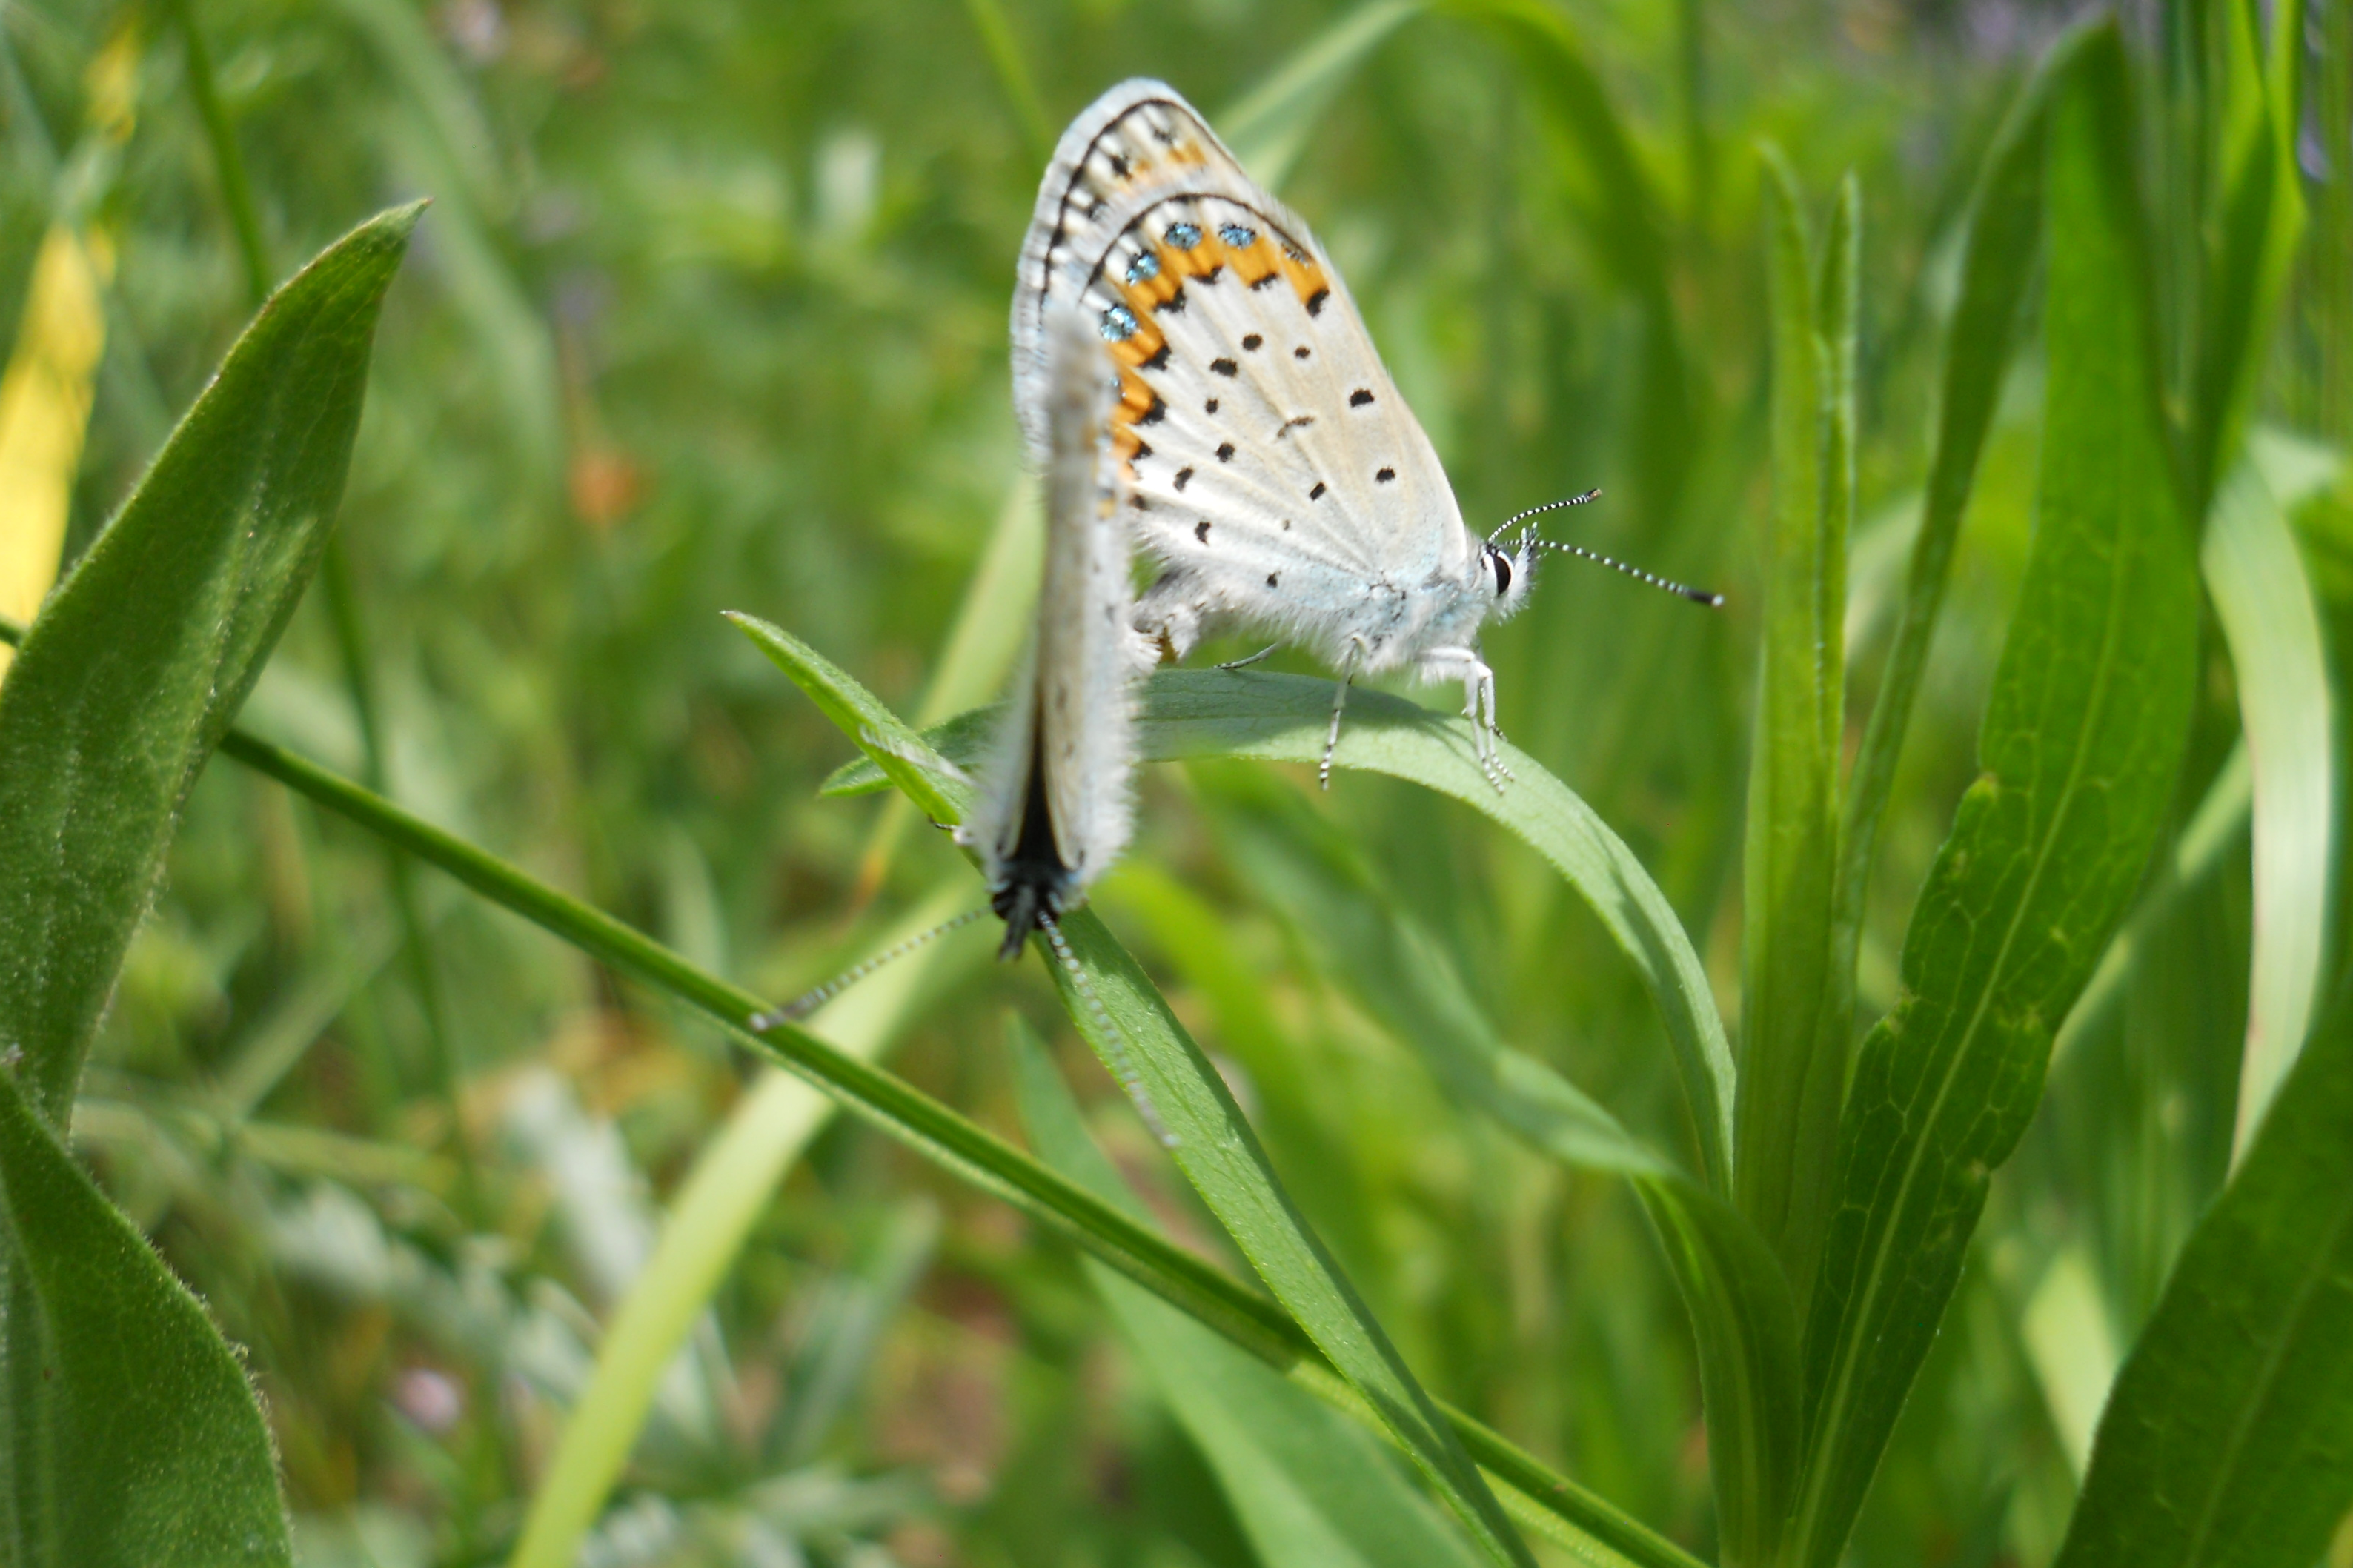 A white butterfly with orange spots sitting on a blade of grass.